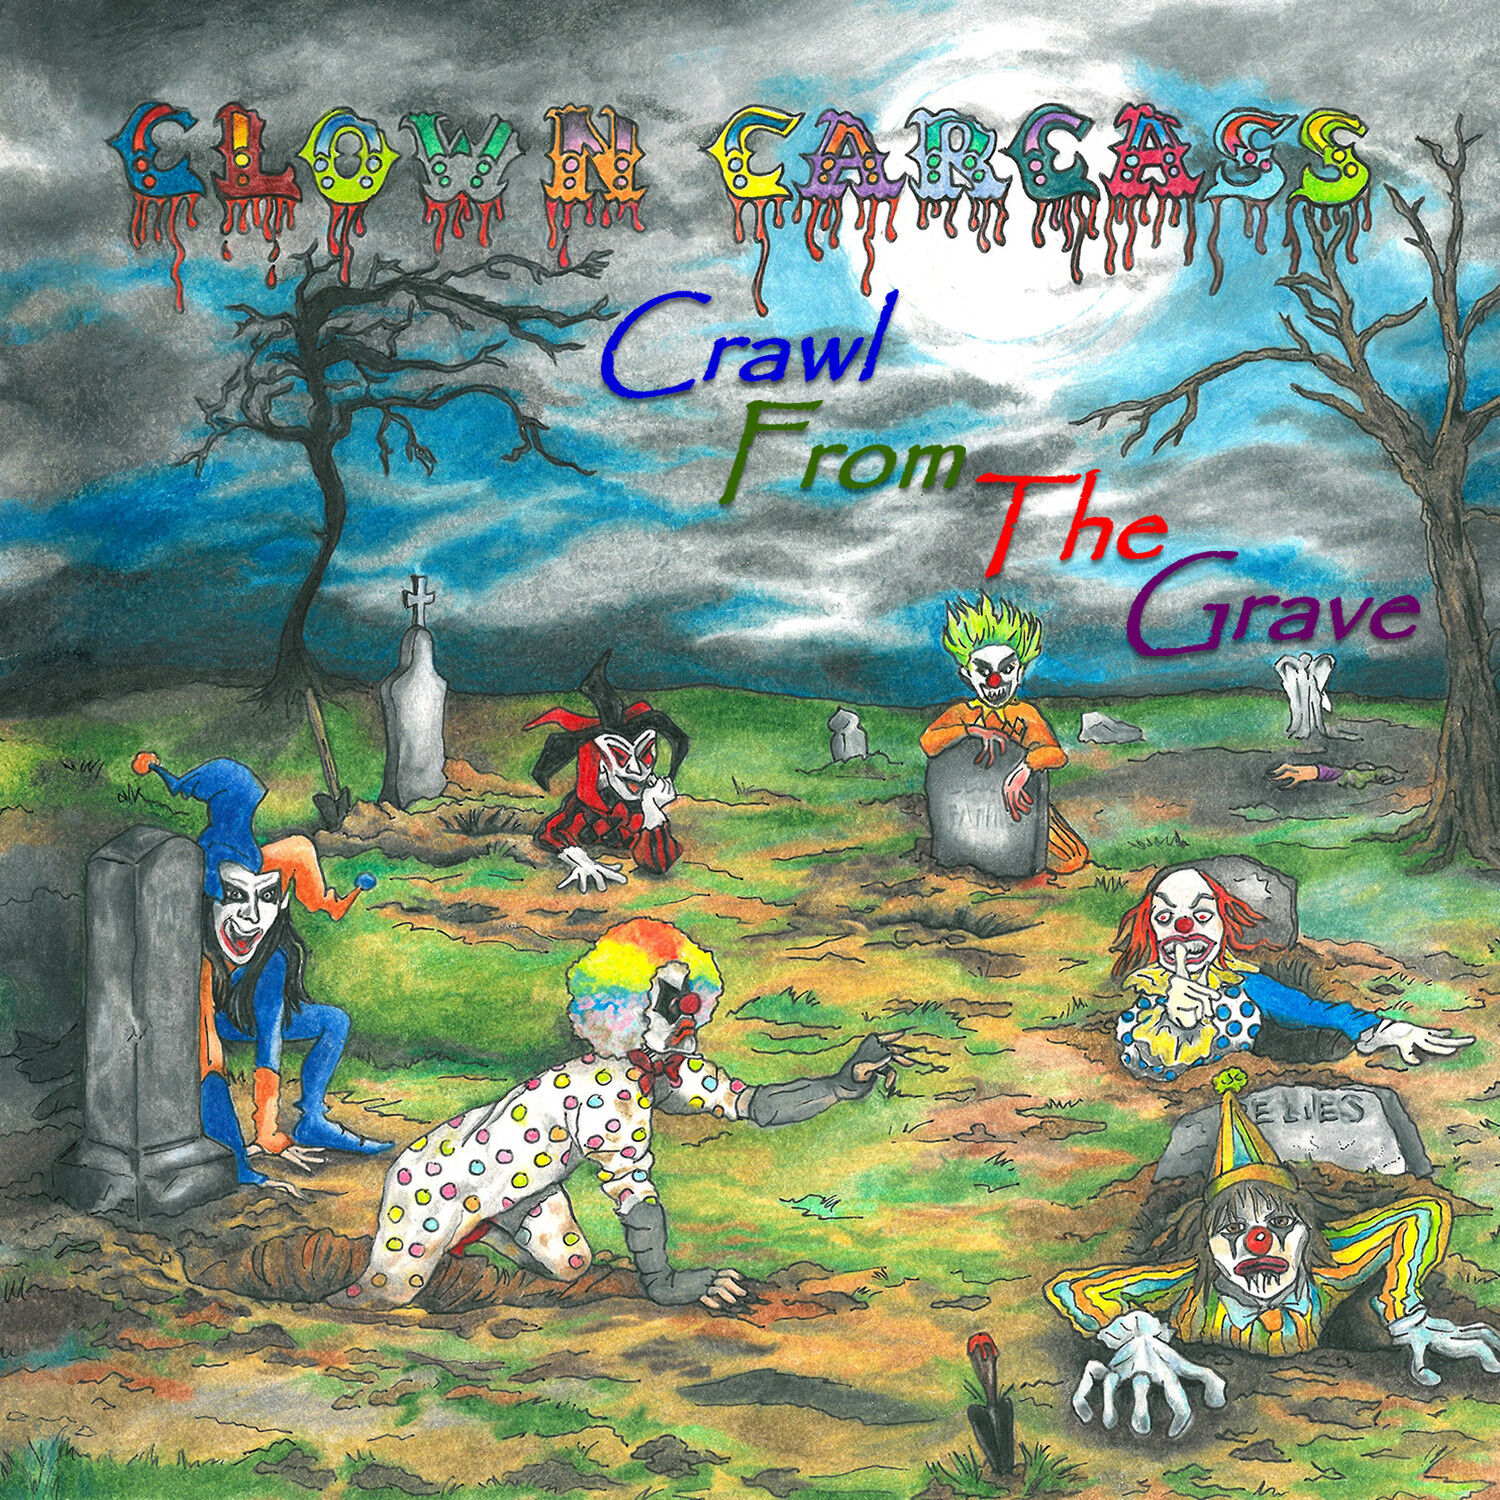 Clown Carcass - Crawl From The Grave CD - Heavy Metal!!! Hard Rock!!!